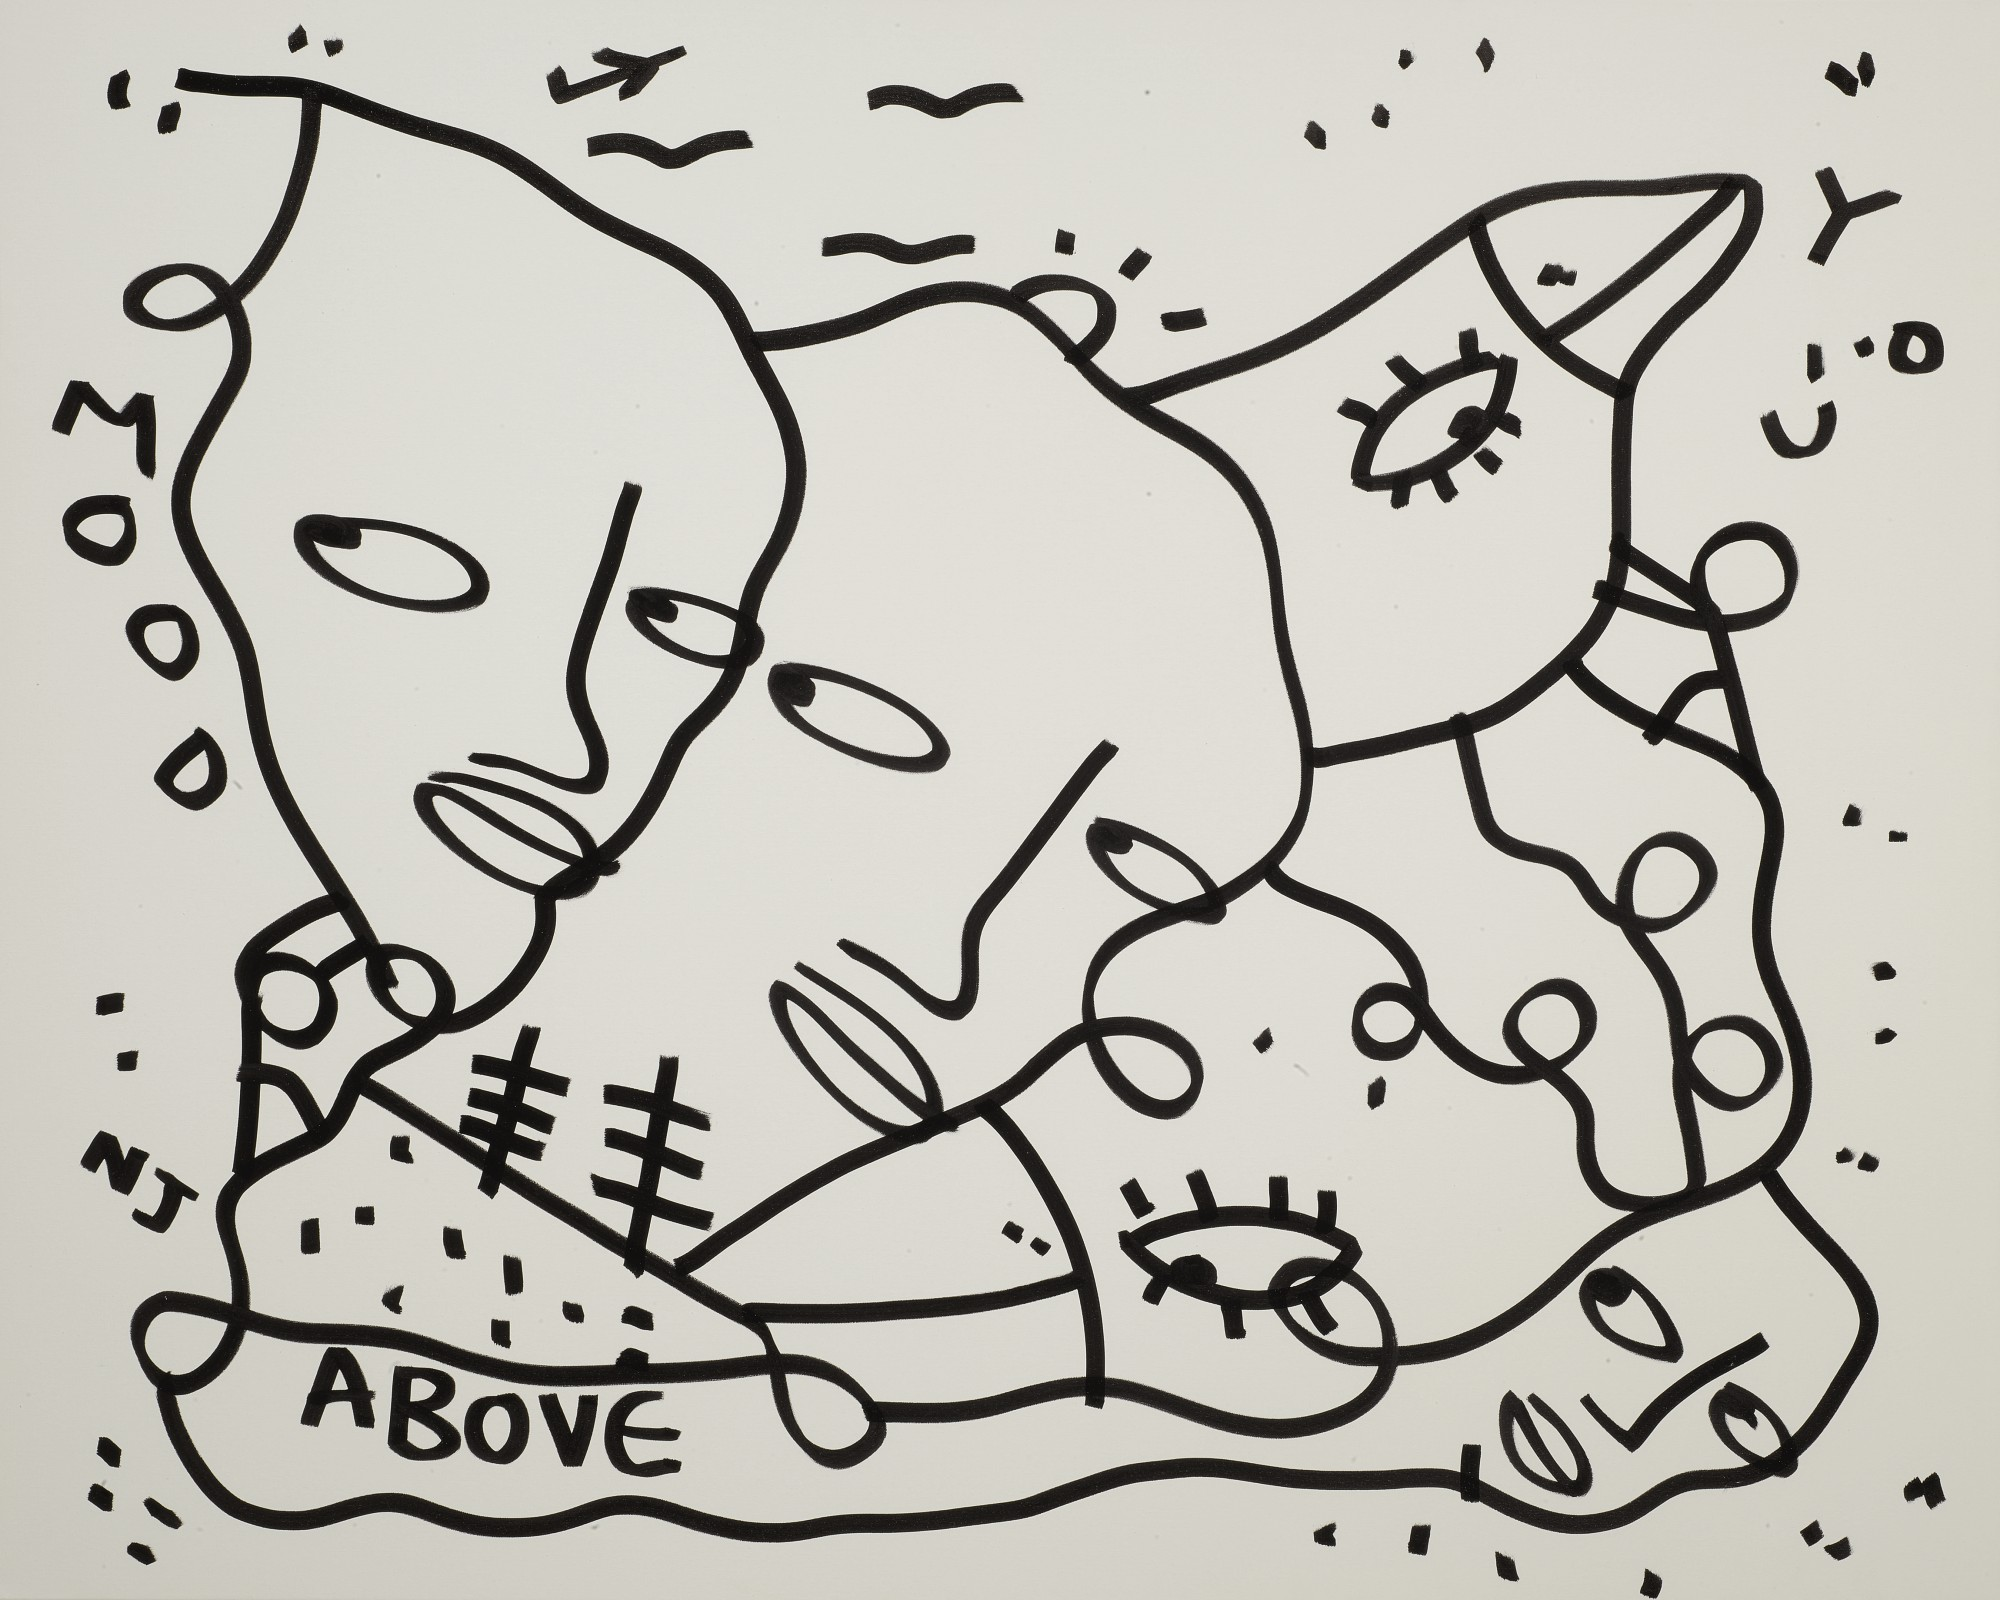 COMMISSIONED WORK BY SHANTELL MARTIN